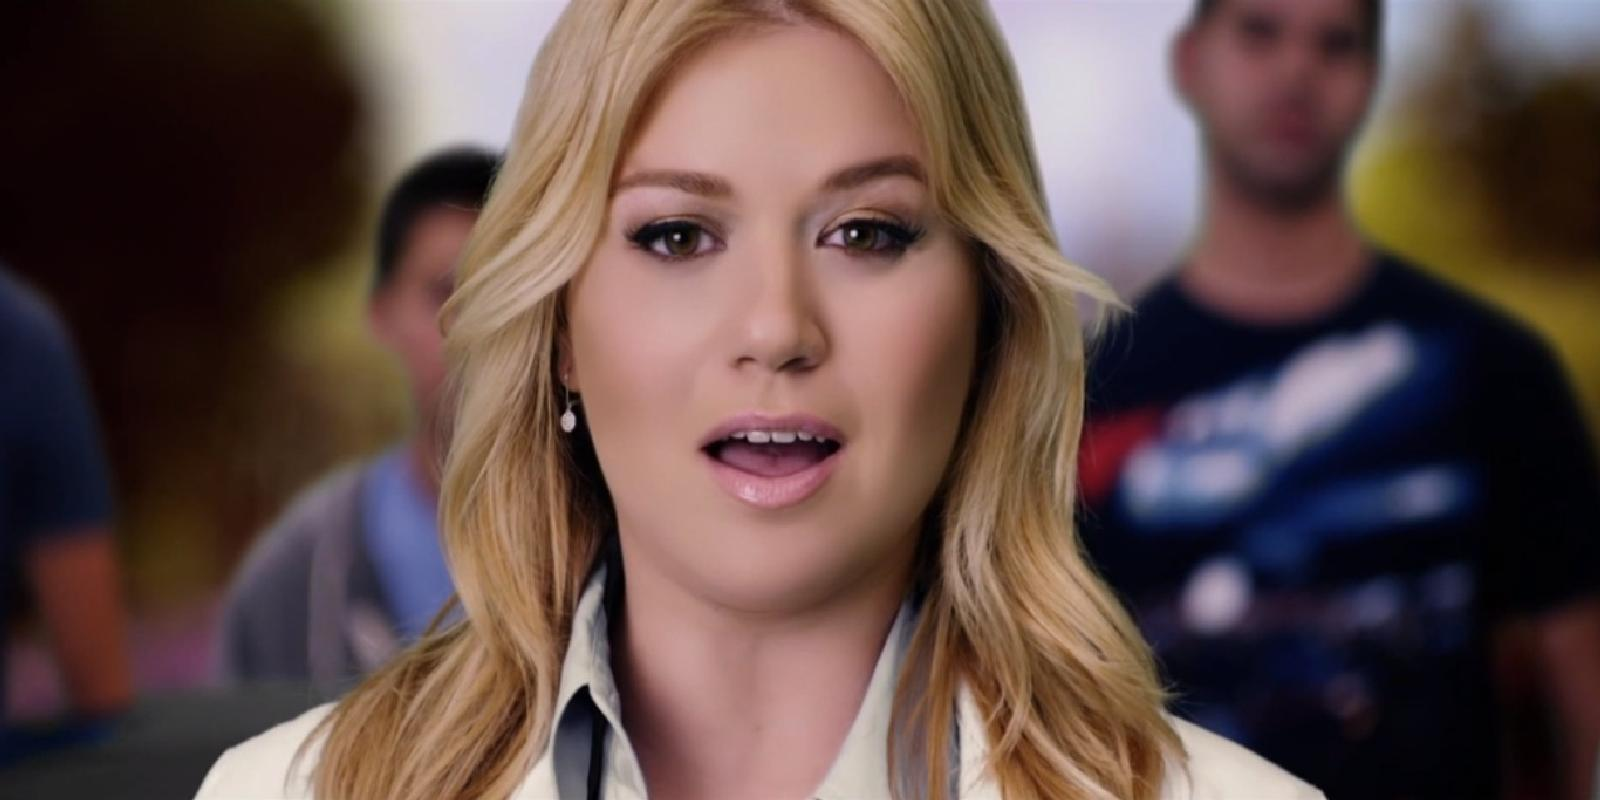 Kelly Clarkson Debuts New Single 'People Like Us' Music